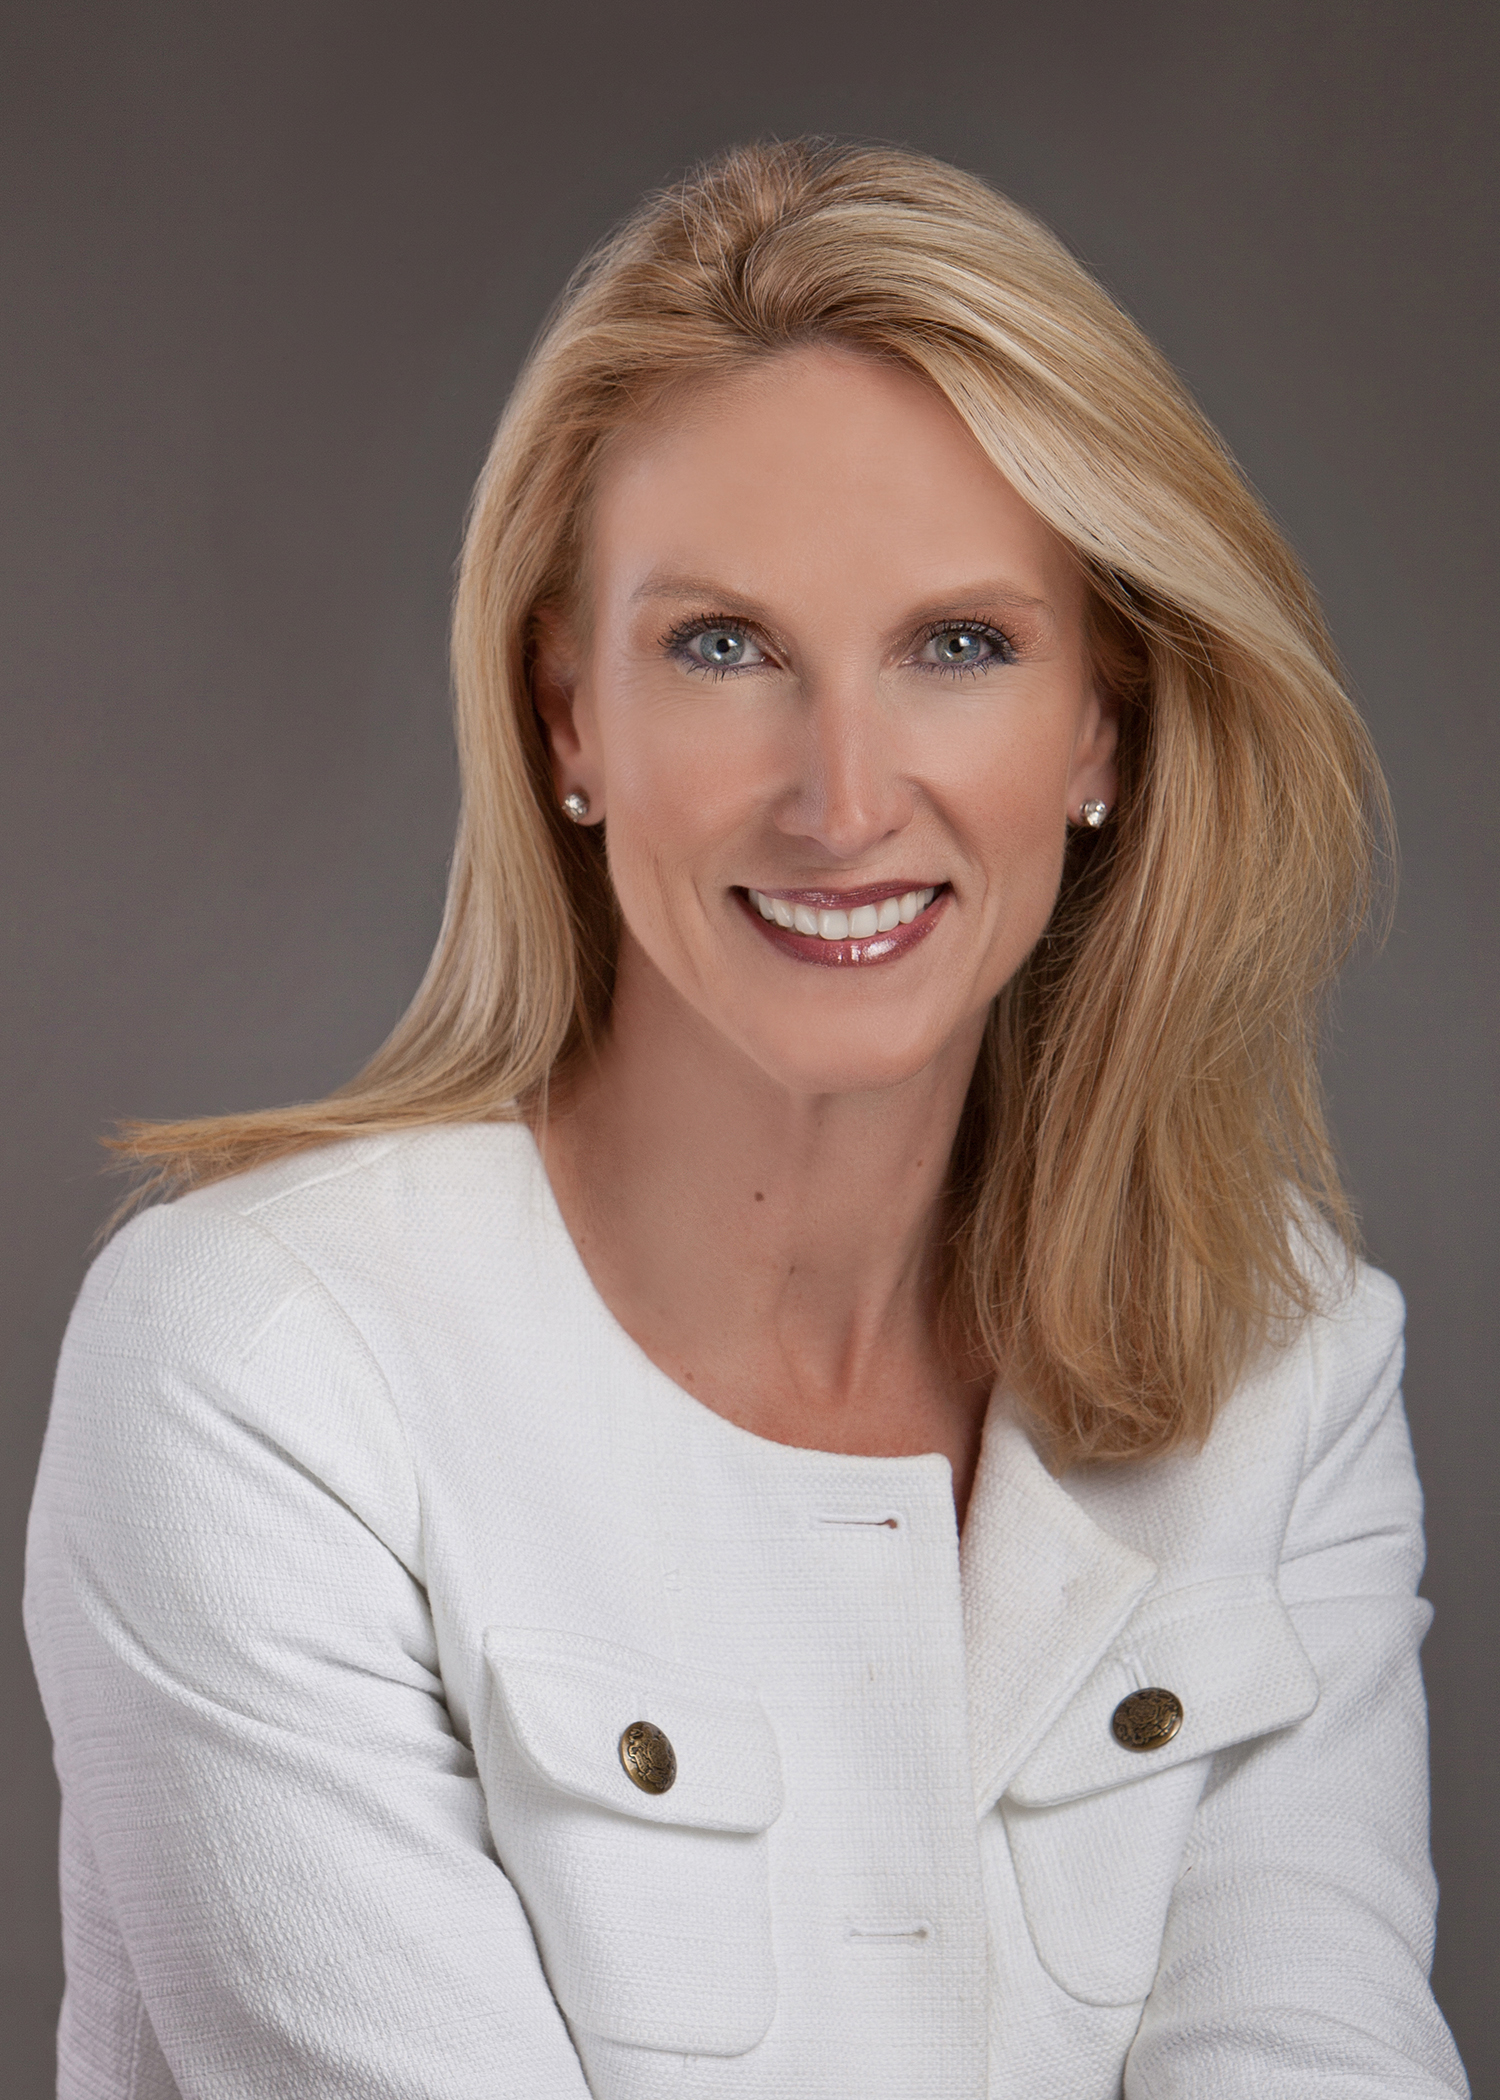 Real Estate Agent California >> Andrea Ivarsson, Real Estate Agent - Los Gatos, CA - Coldwell Banker Residential Brokerage